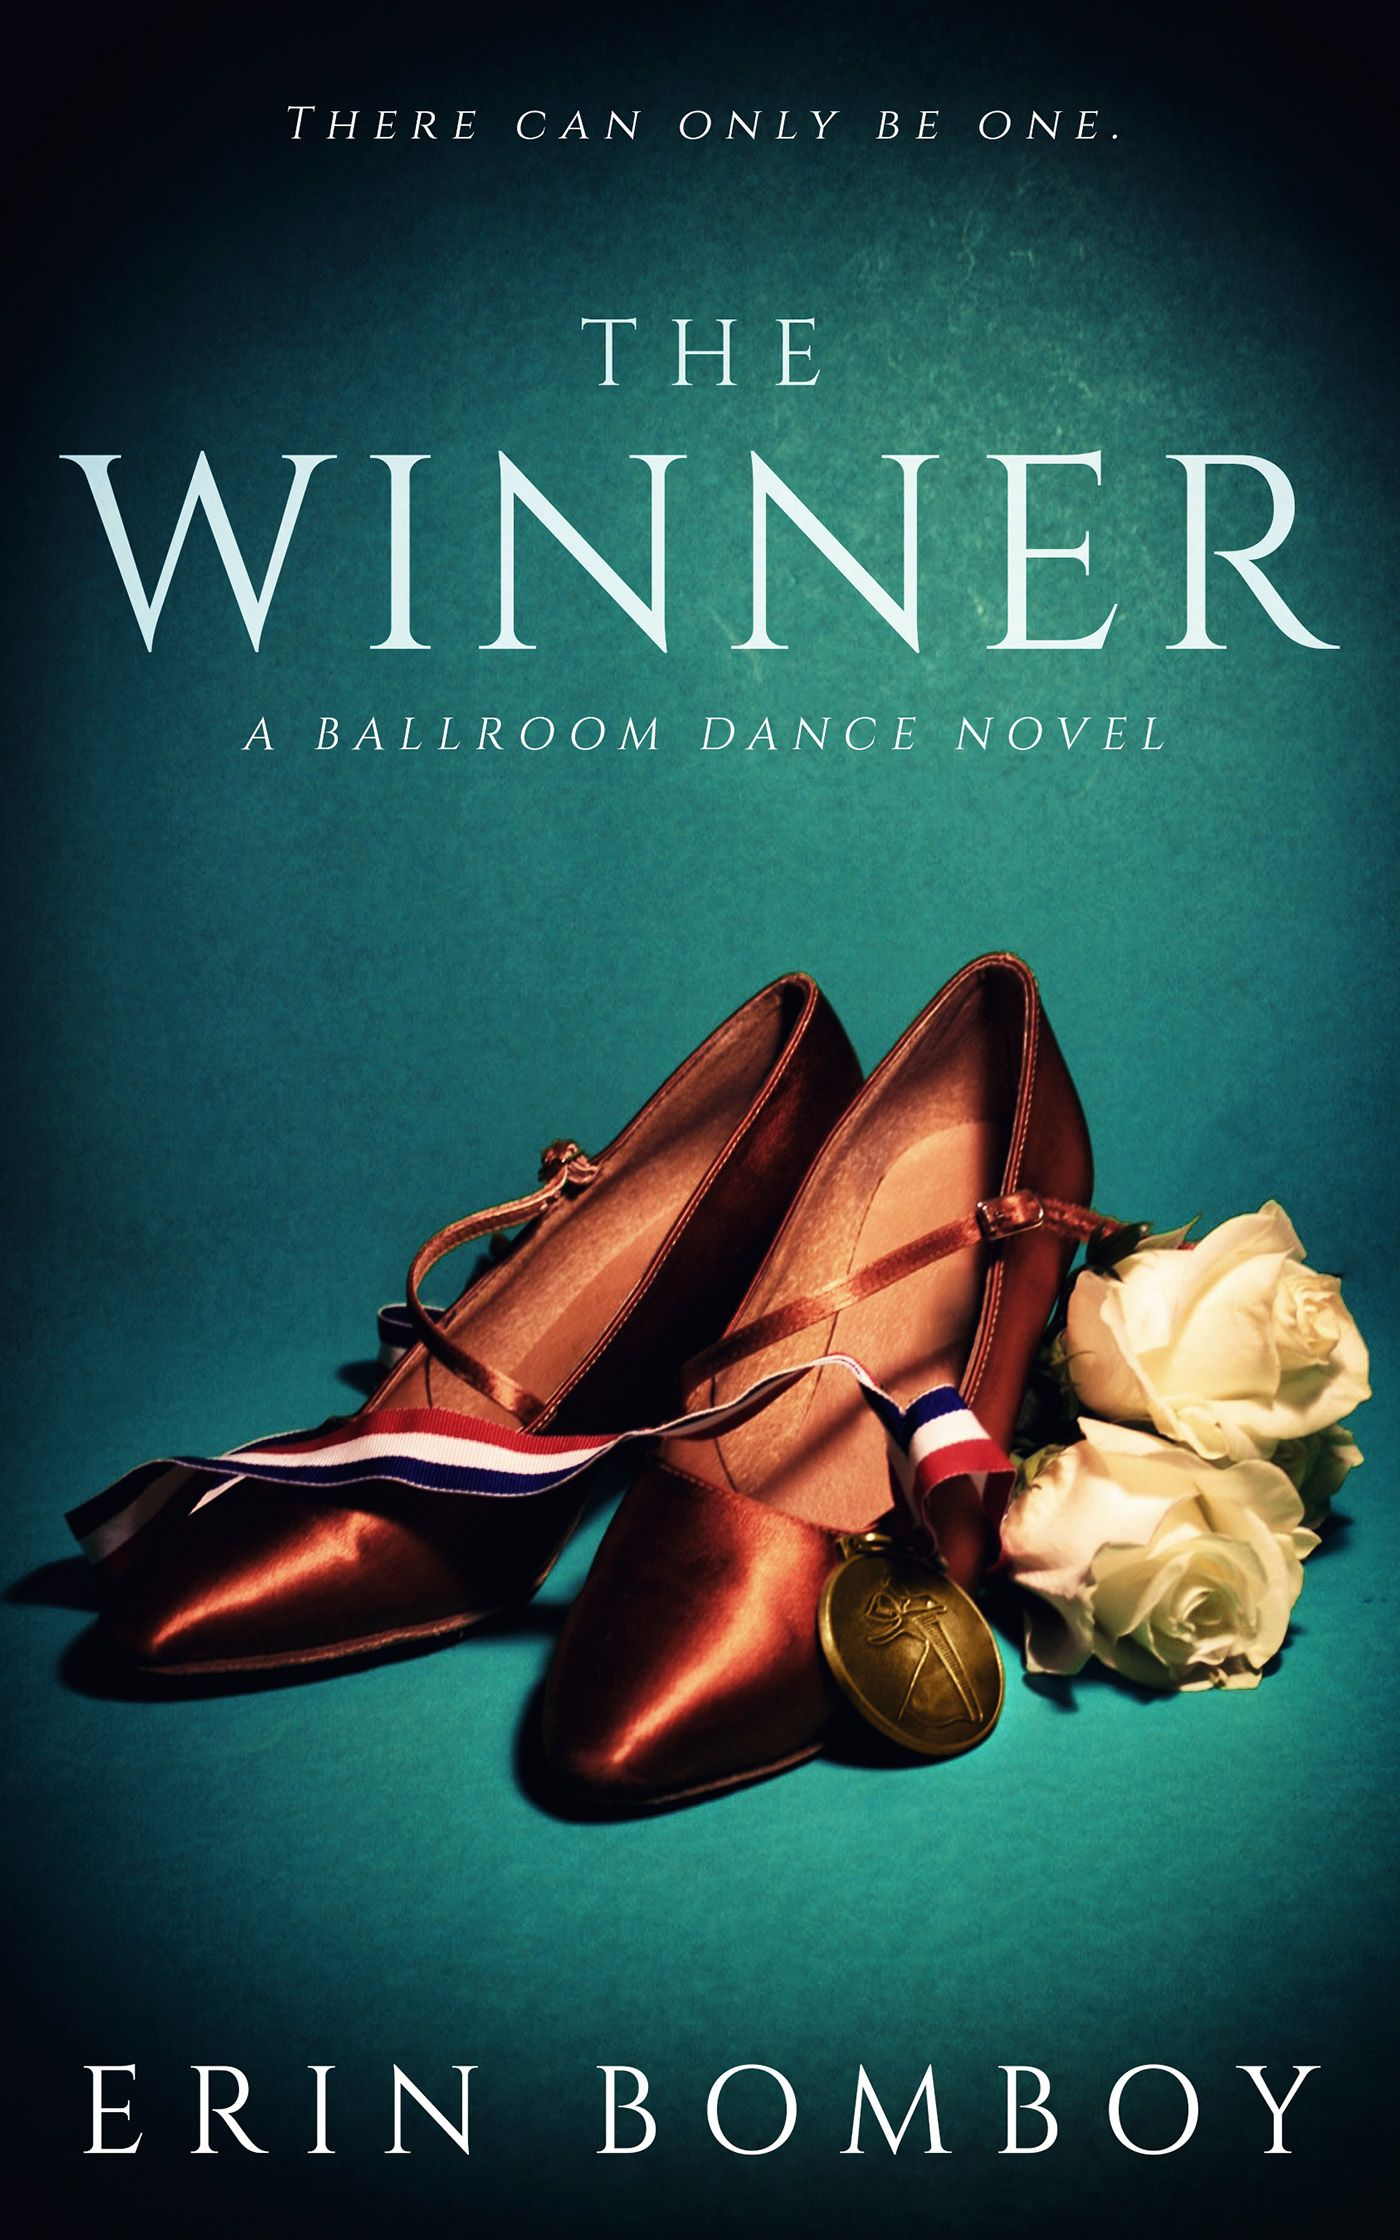 The Winner A Ballroom Dance Novel by Erin Bomboy. Drama